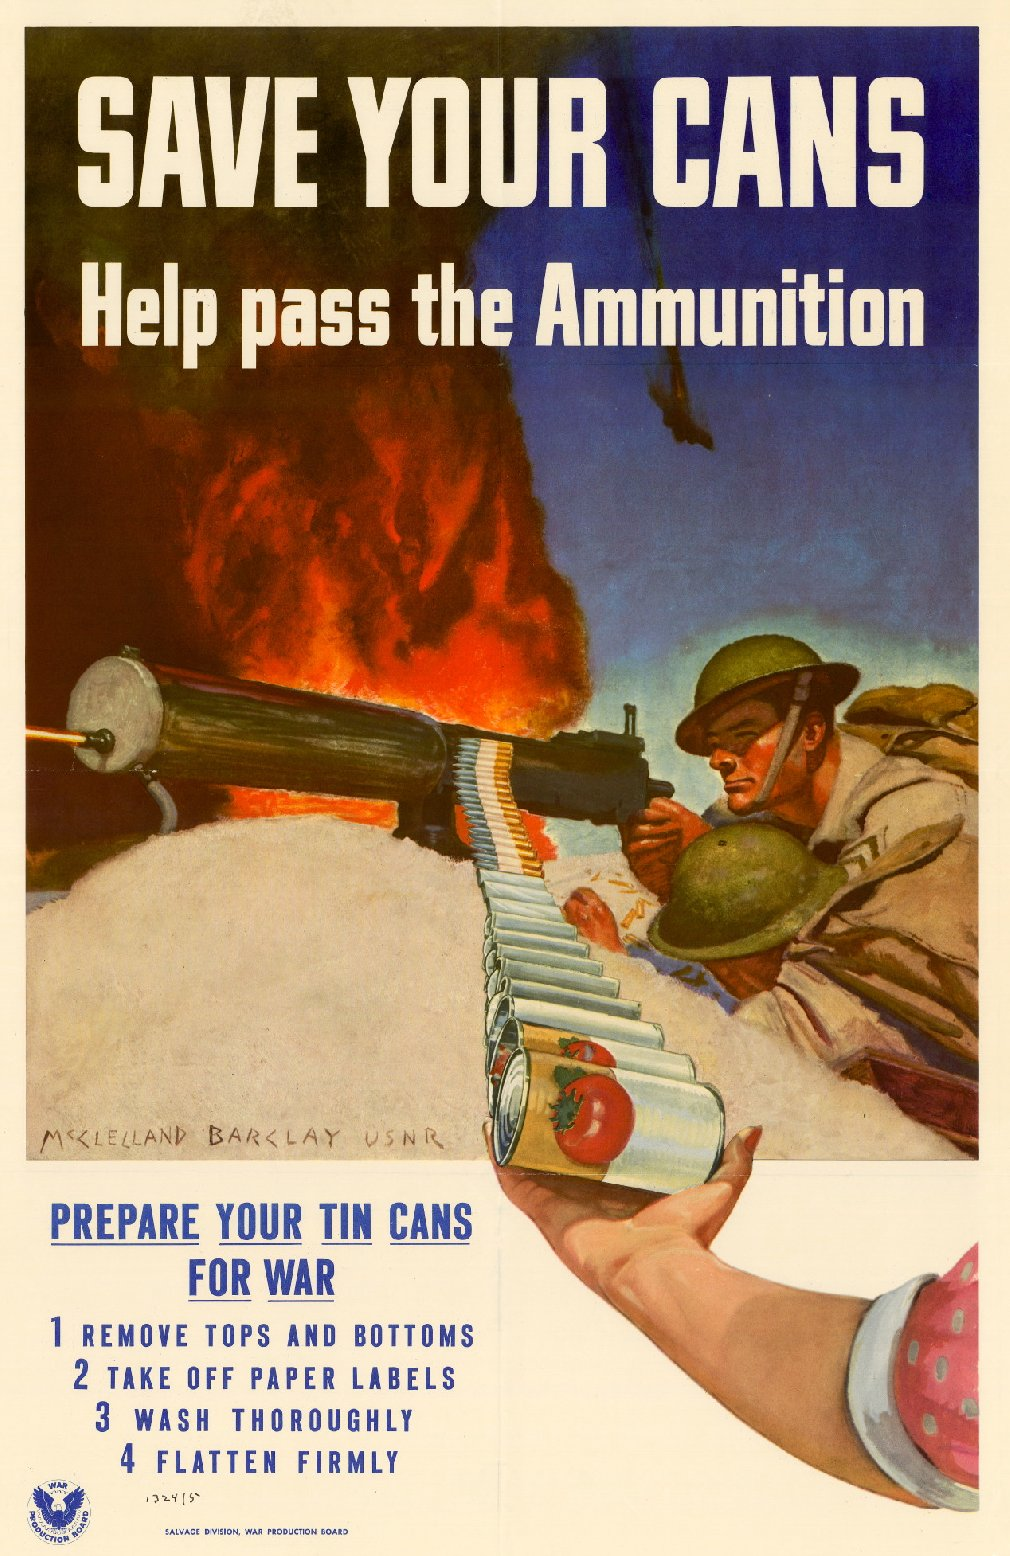 illustrative poster of tin cans being loaded into a gun to be used as ammunition